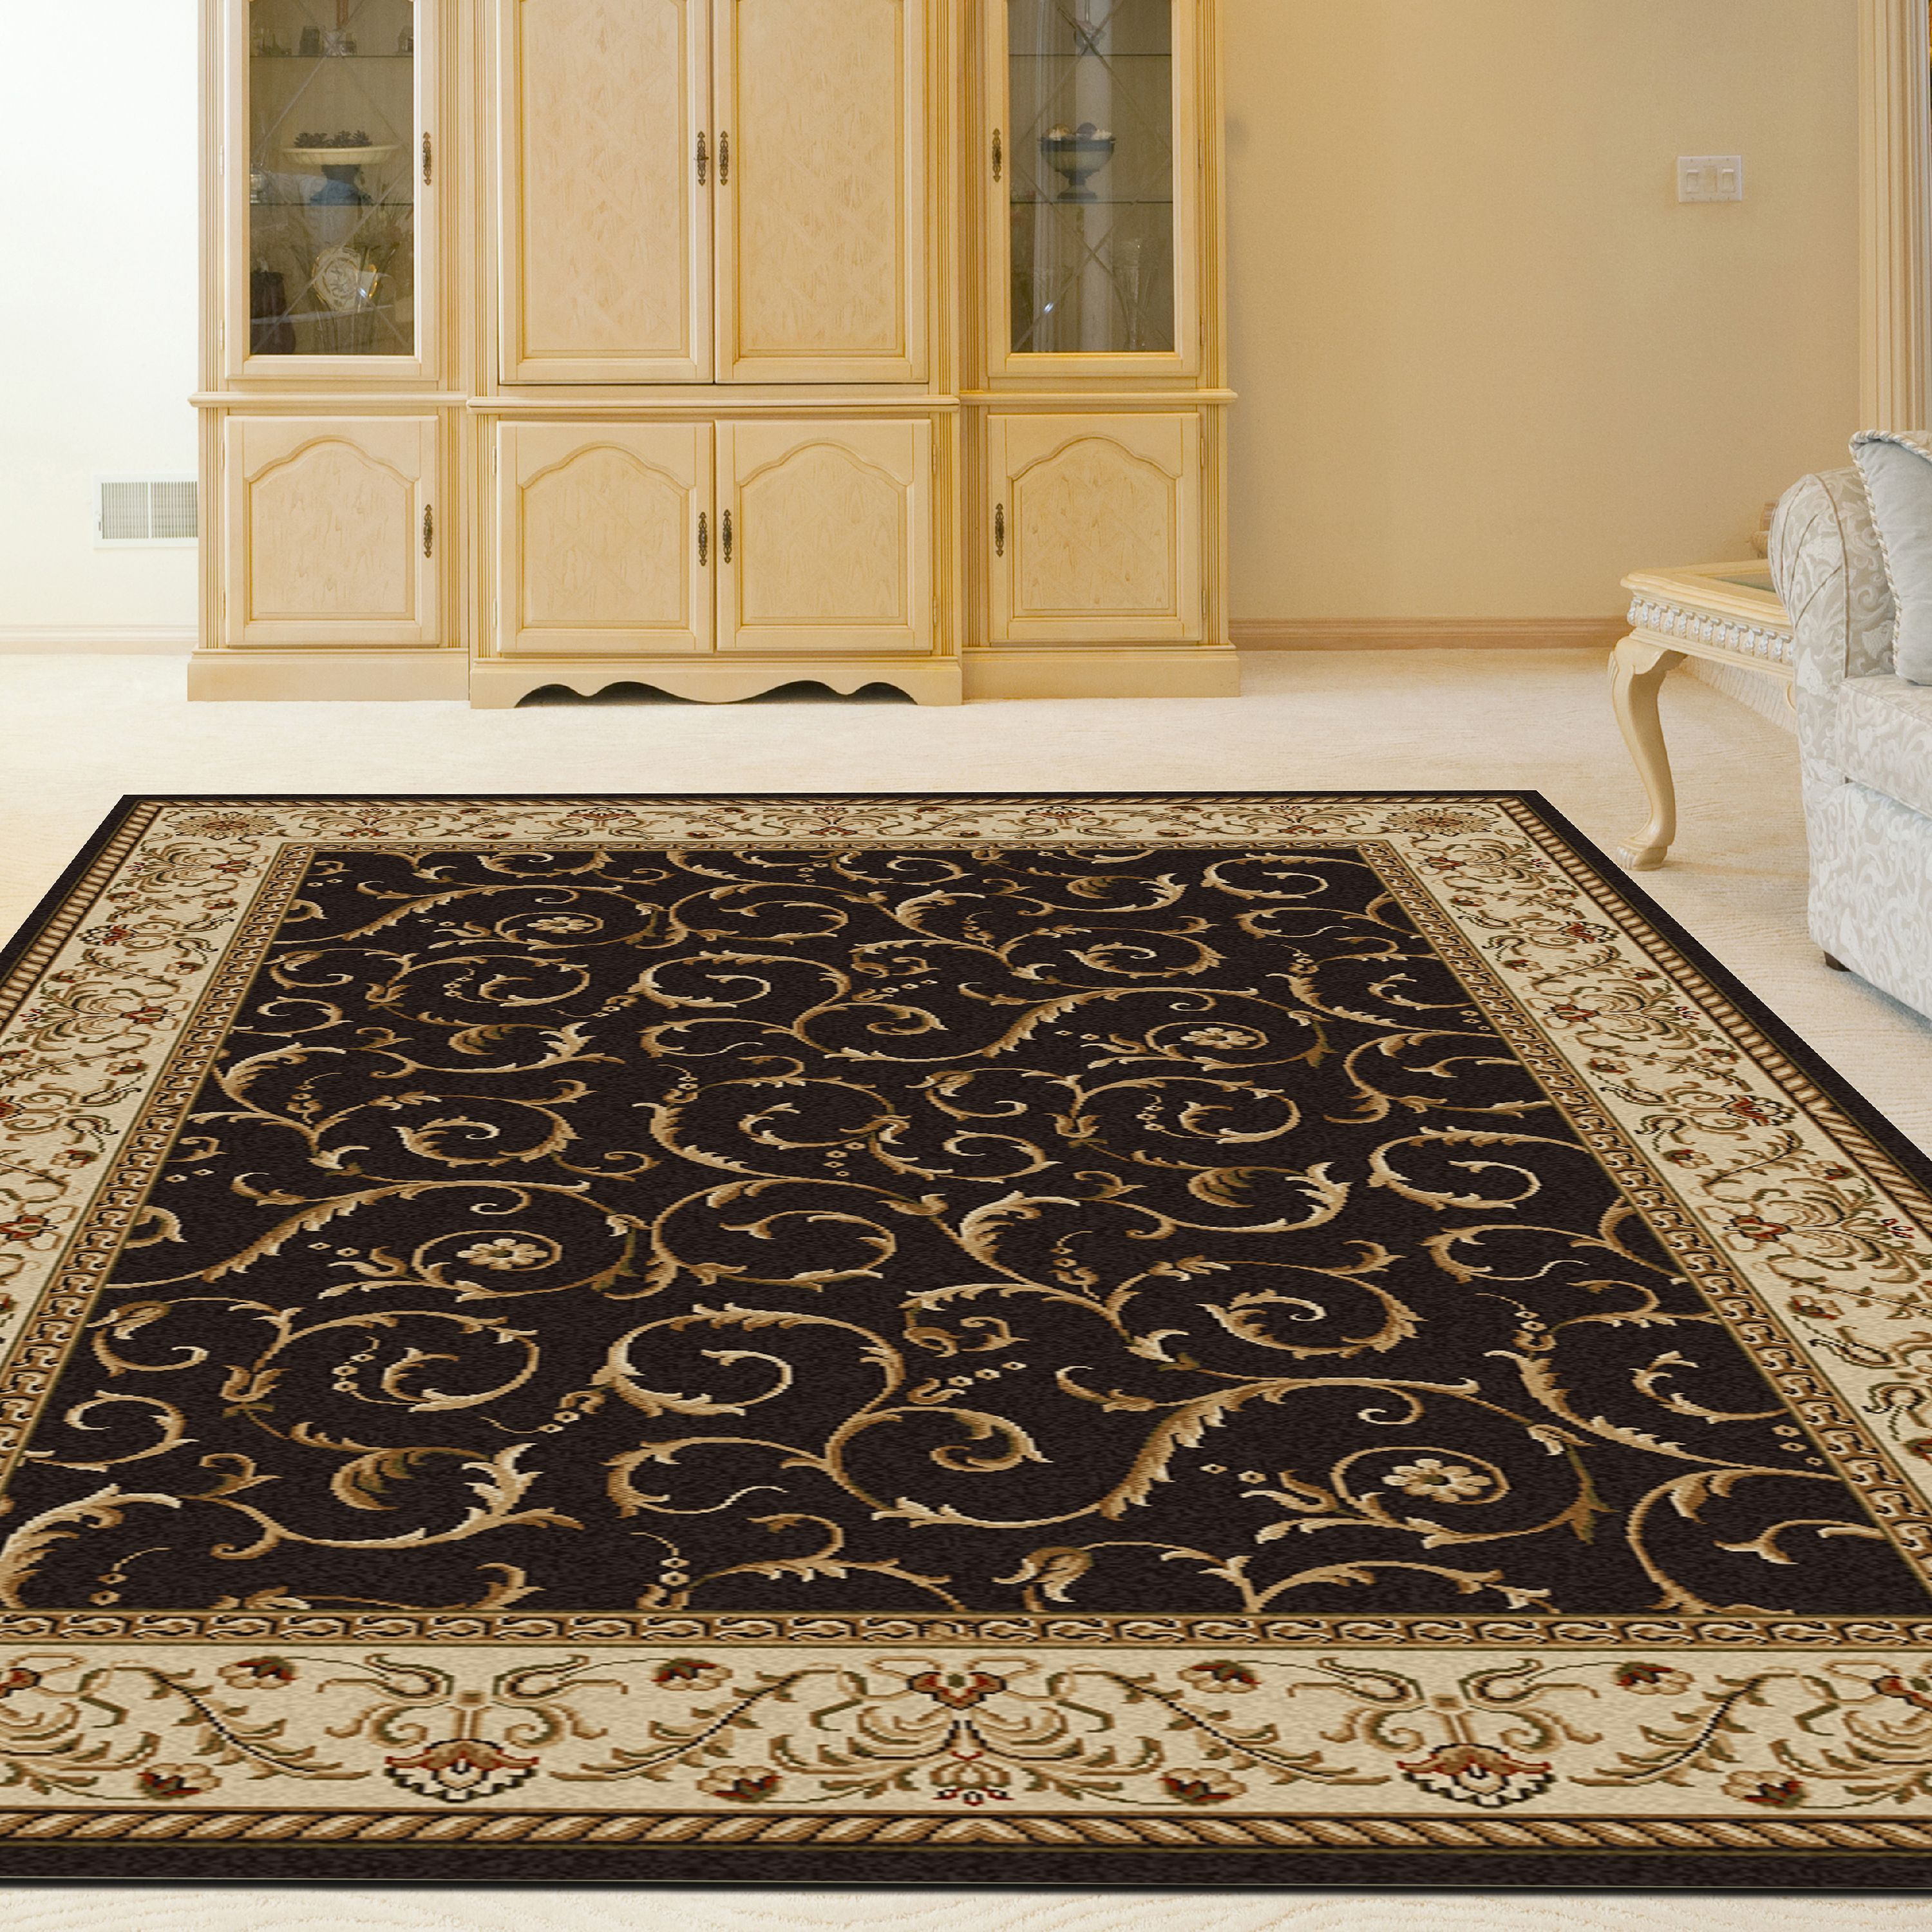 Radici USA Como 1599 Area Rug - Brown